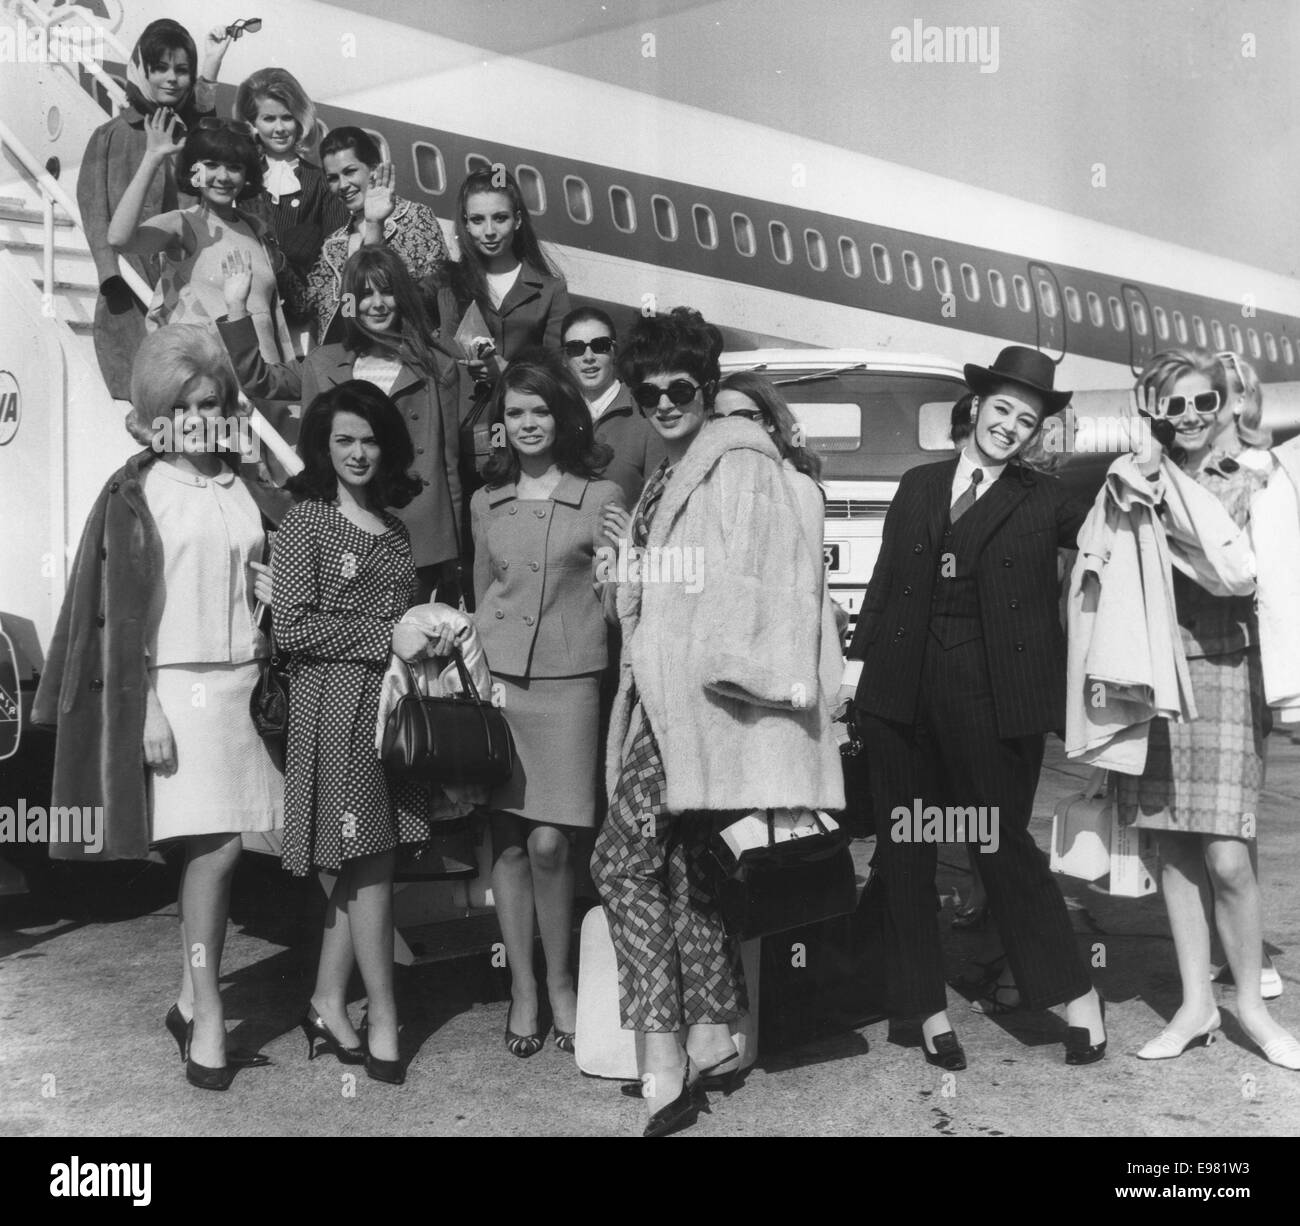 London, UK, UK. 17th Apr, 1967. Twenty-one contestants for the Miss International 1967 contest prepare to leave Stock Photo